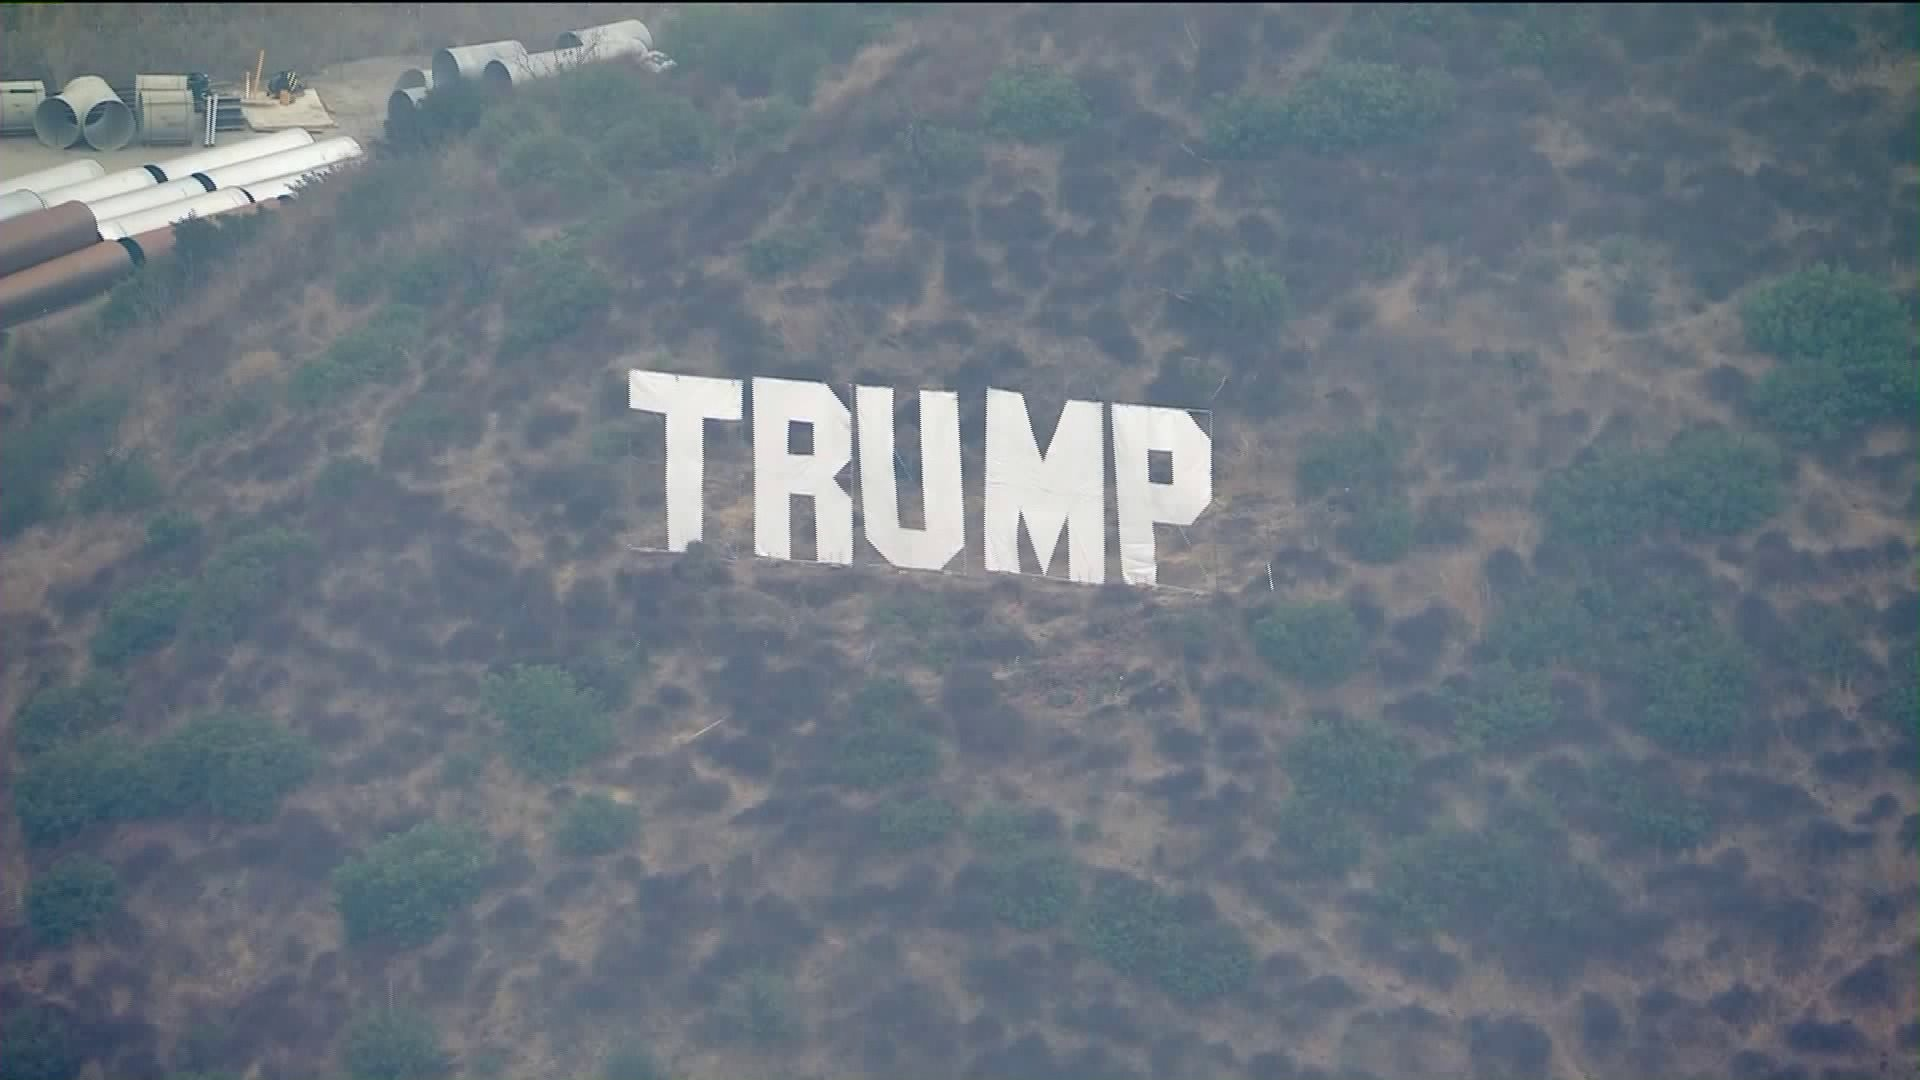 A Trump sign, comprised of Hollywood-sign style lettering, appeared on the 405 Freeway in the Sepulveda Pass on Oct. 6, 2020. (KTLA)